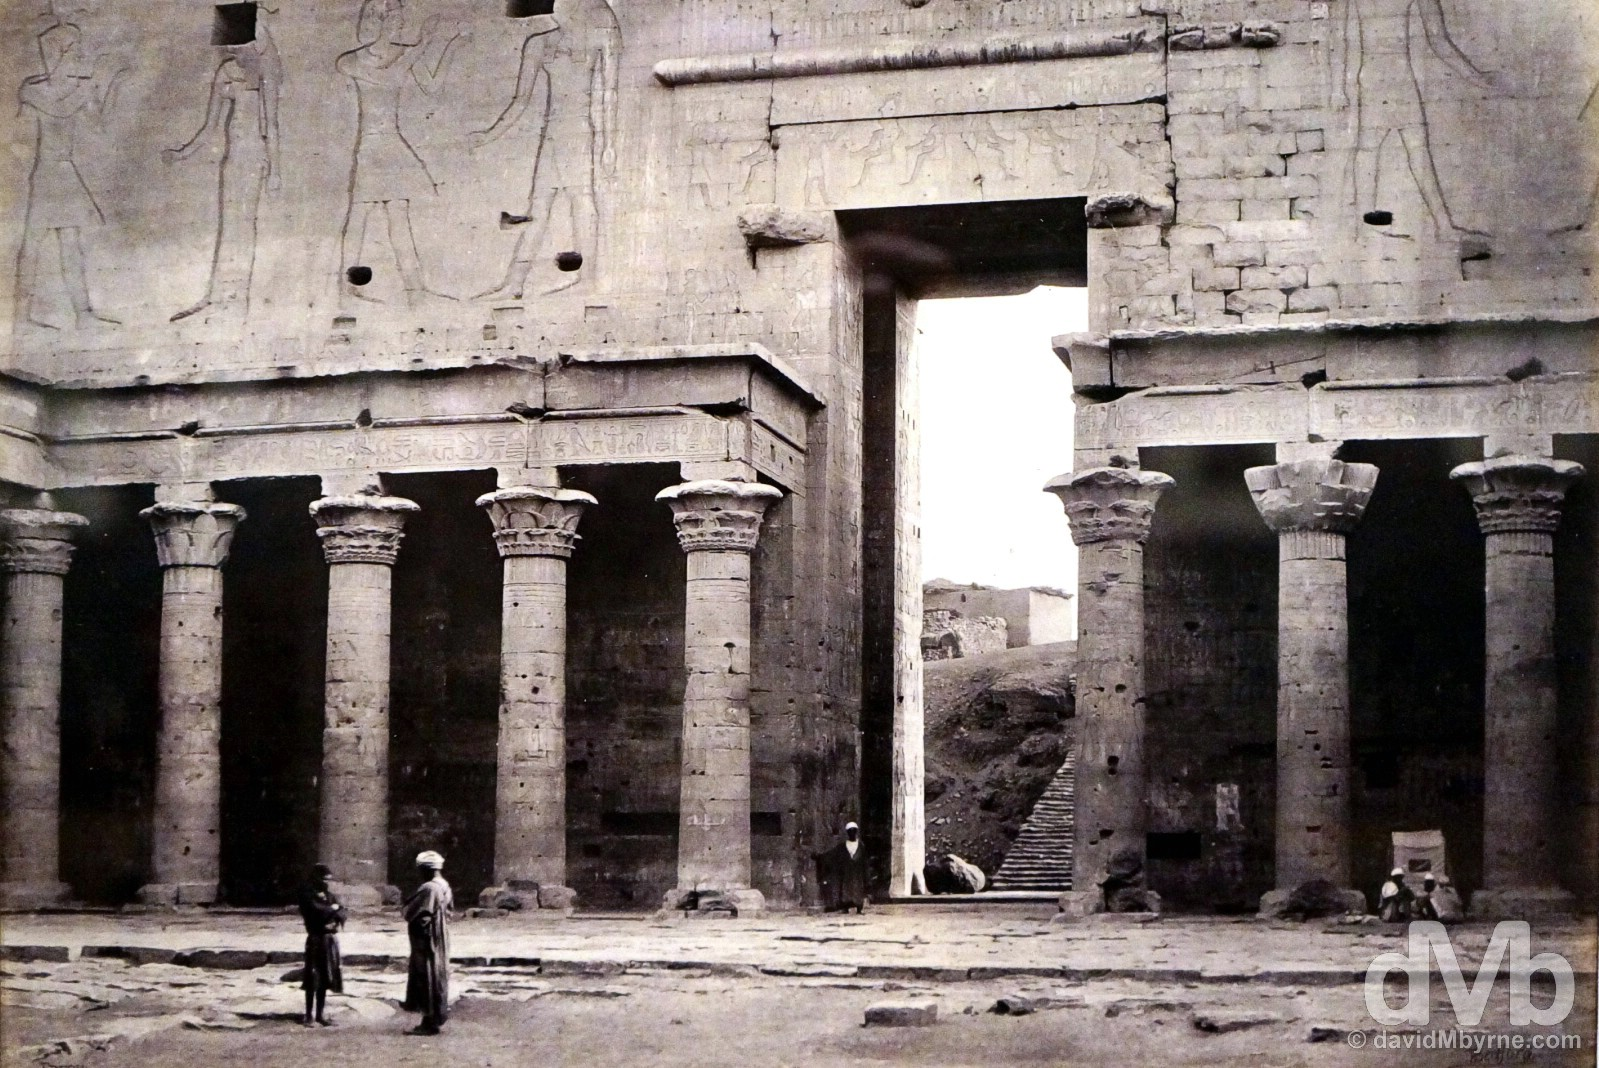 A Francis Bedford (1815-1894) capture of the Great Court of the Temple of Horus in Edfu, Egypt. Captured on March 14, 1862, & on display as part of the Cairo to Constantinople Exhibit in the Queen's Gallery of Buckingham Palace, London, England. December 14, 2014.